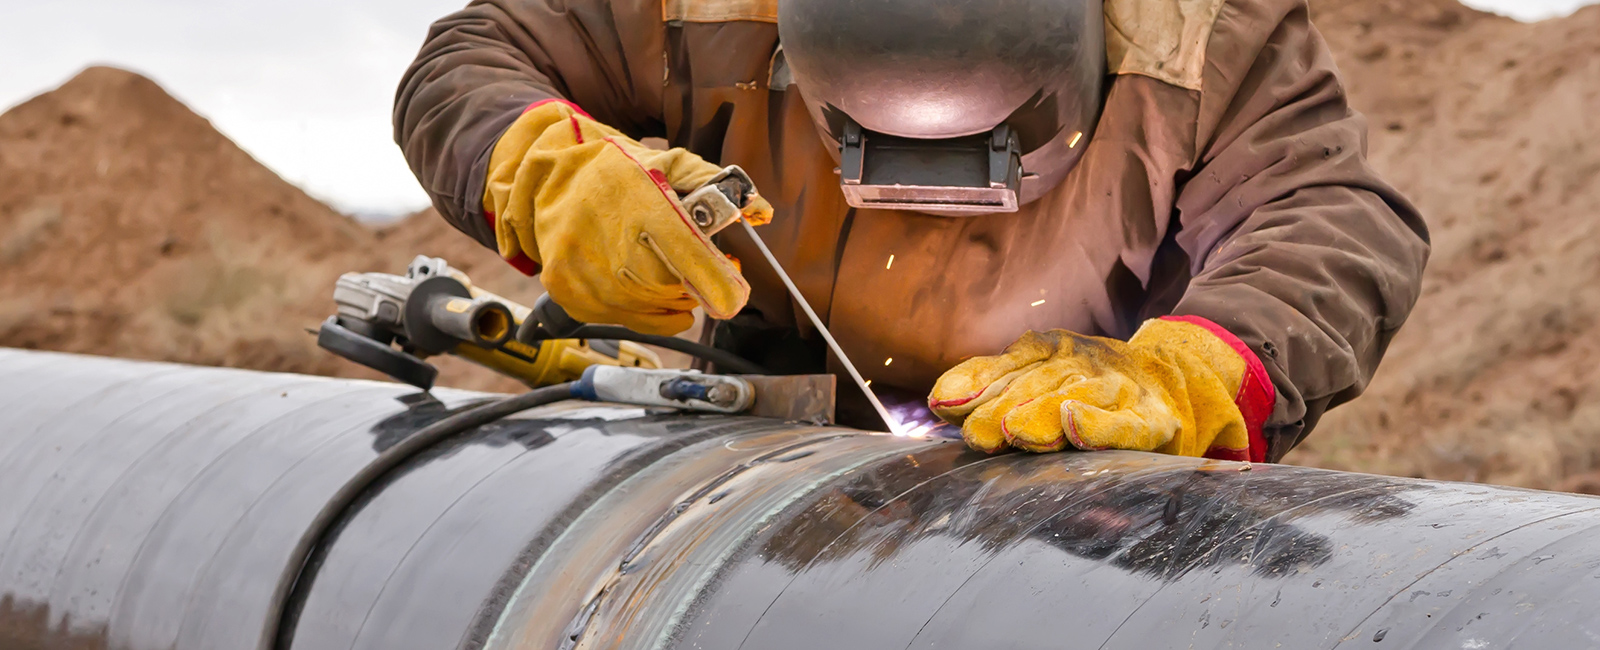 Finding Solutions to the Skilled Labor Shortage, Matt Ralston